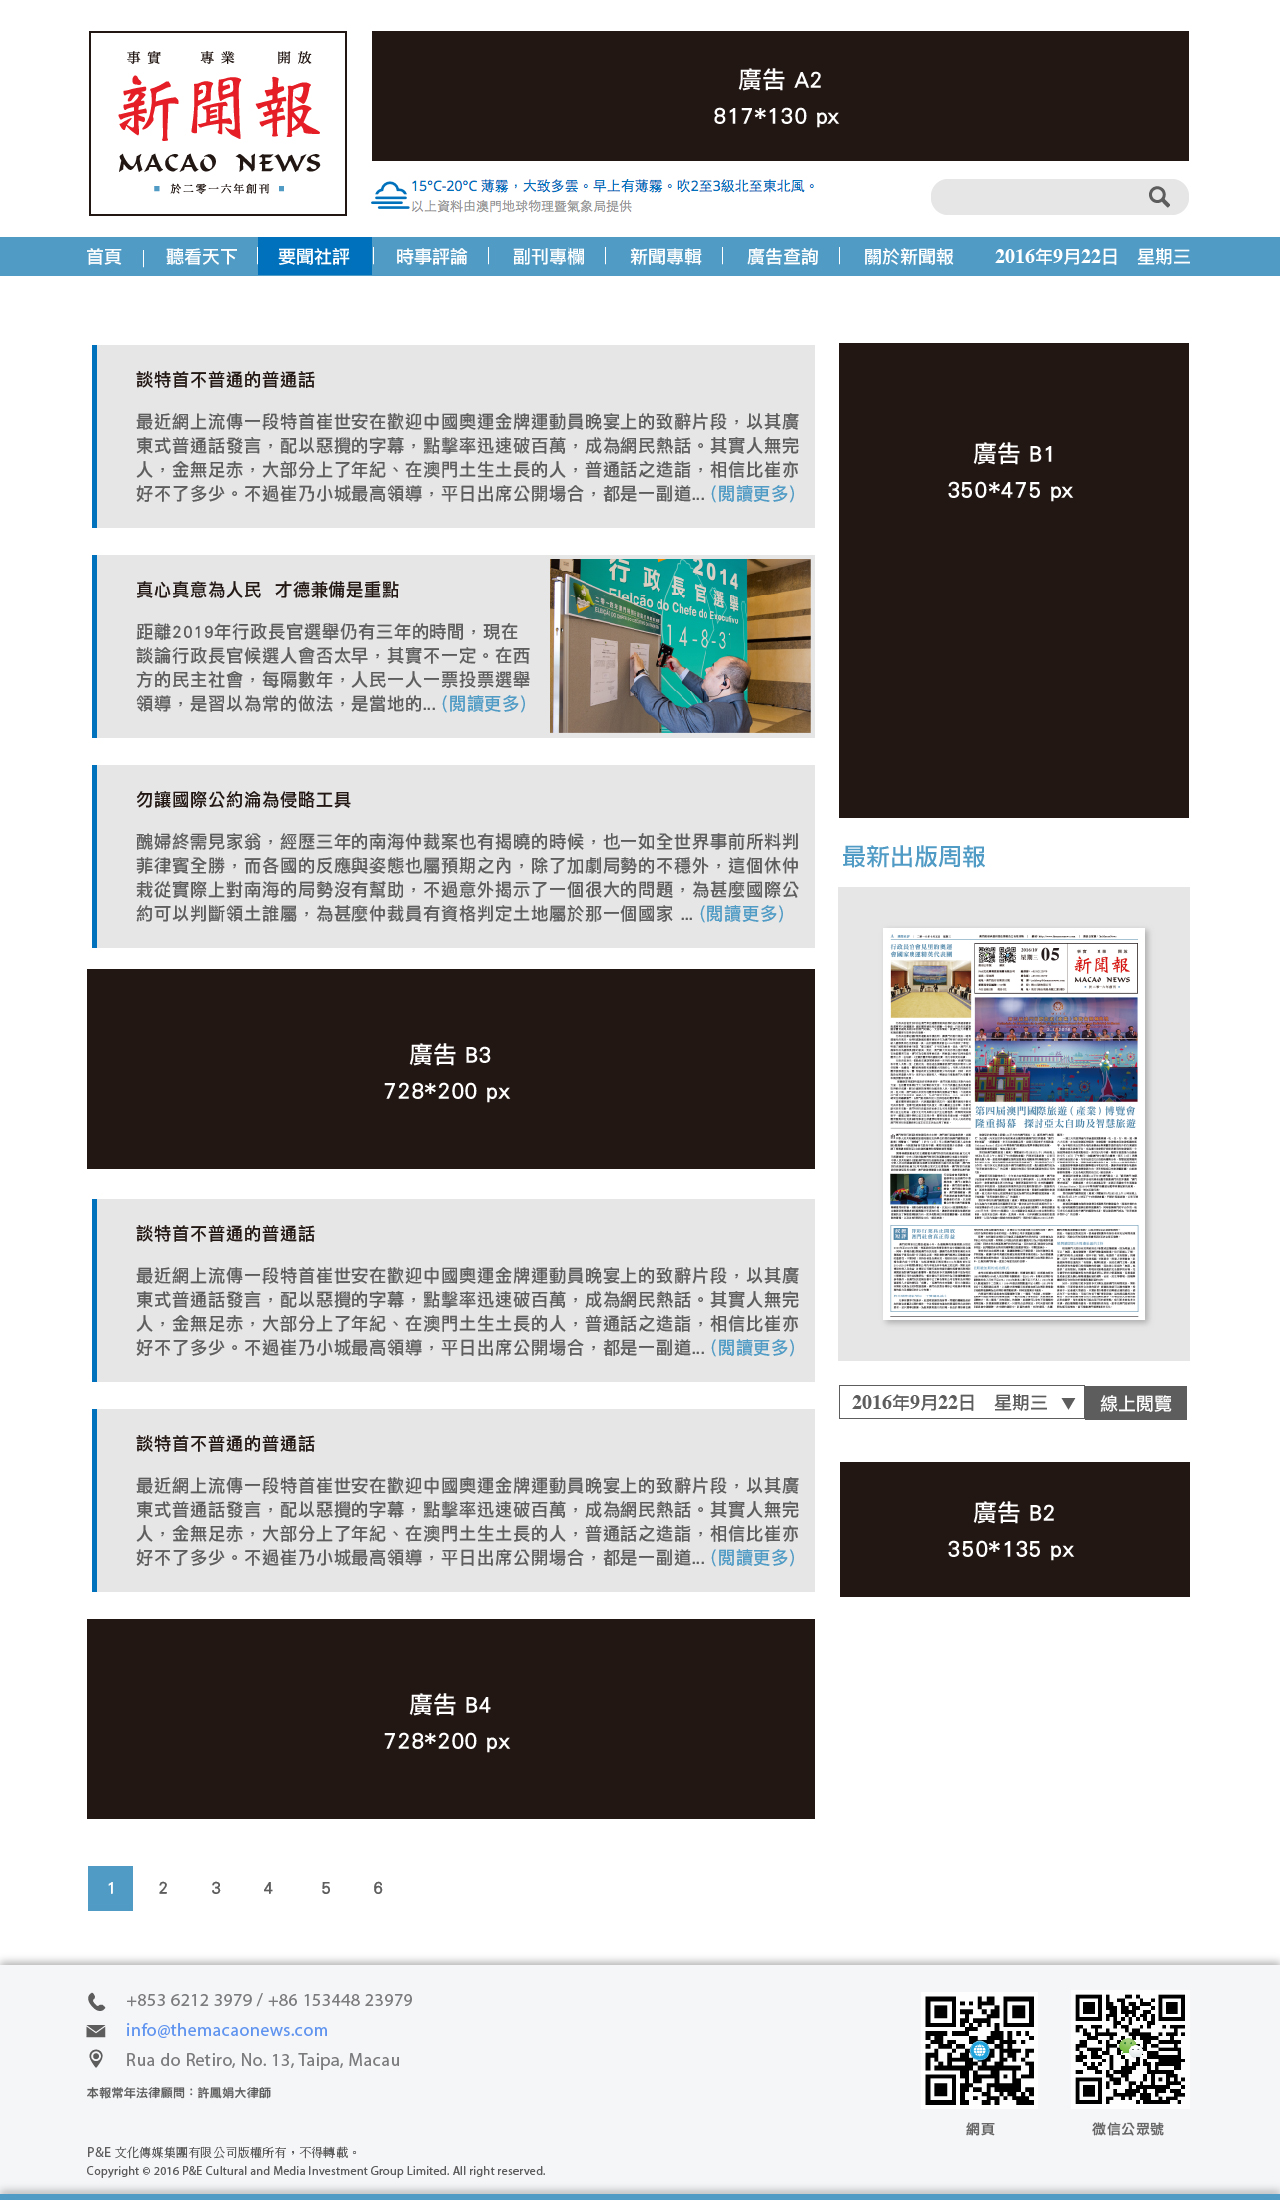 macao-news-website-ad-04